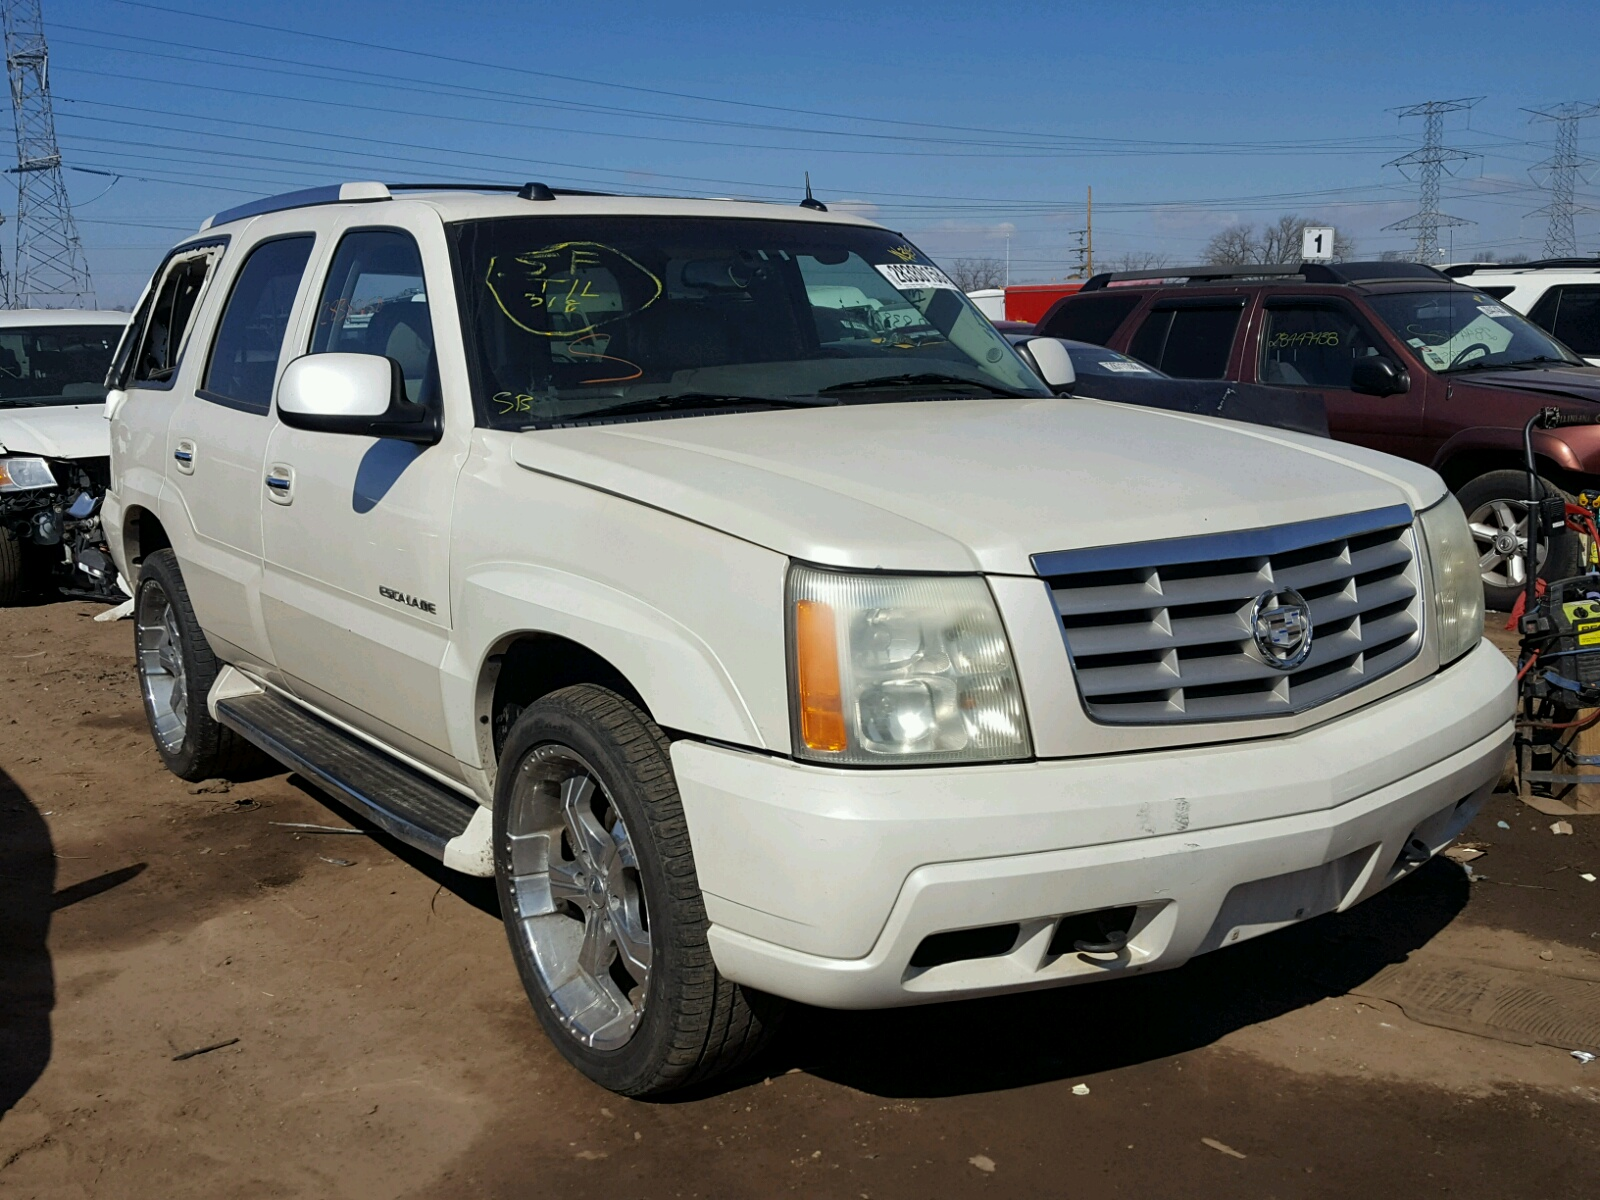 of copart salvage auto columbia cadillac sc sale left in l cert lot carfinder online escalade black en for on view title auctions